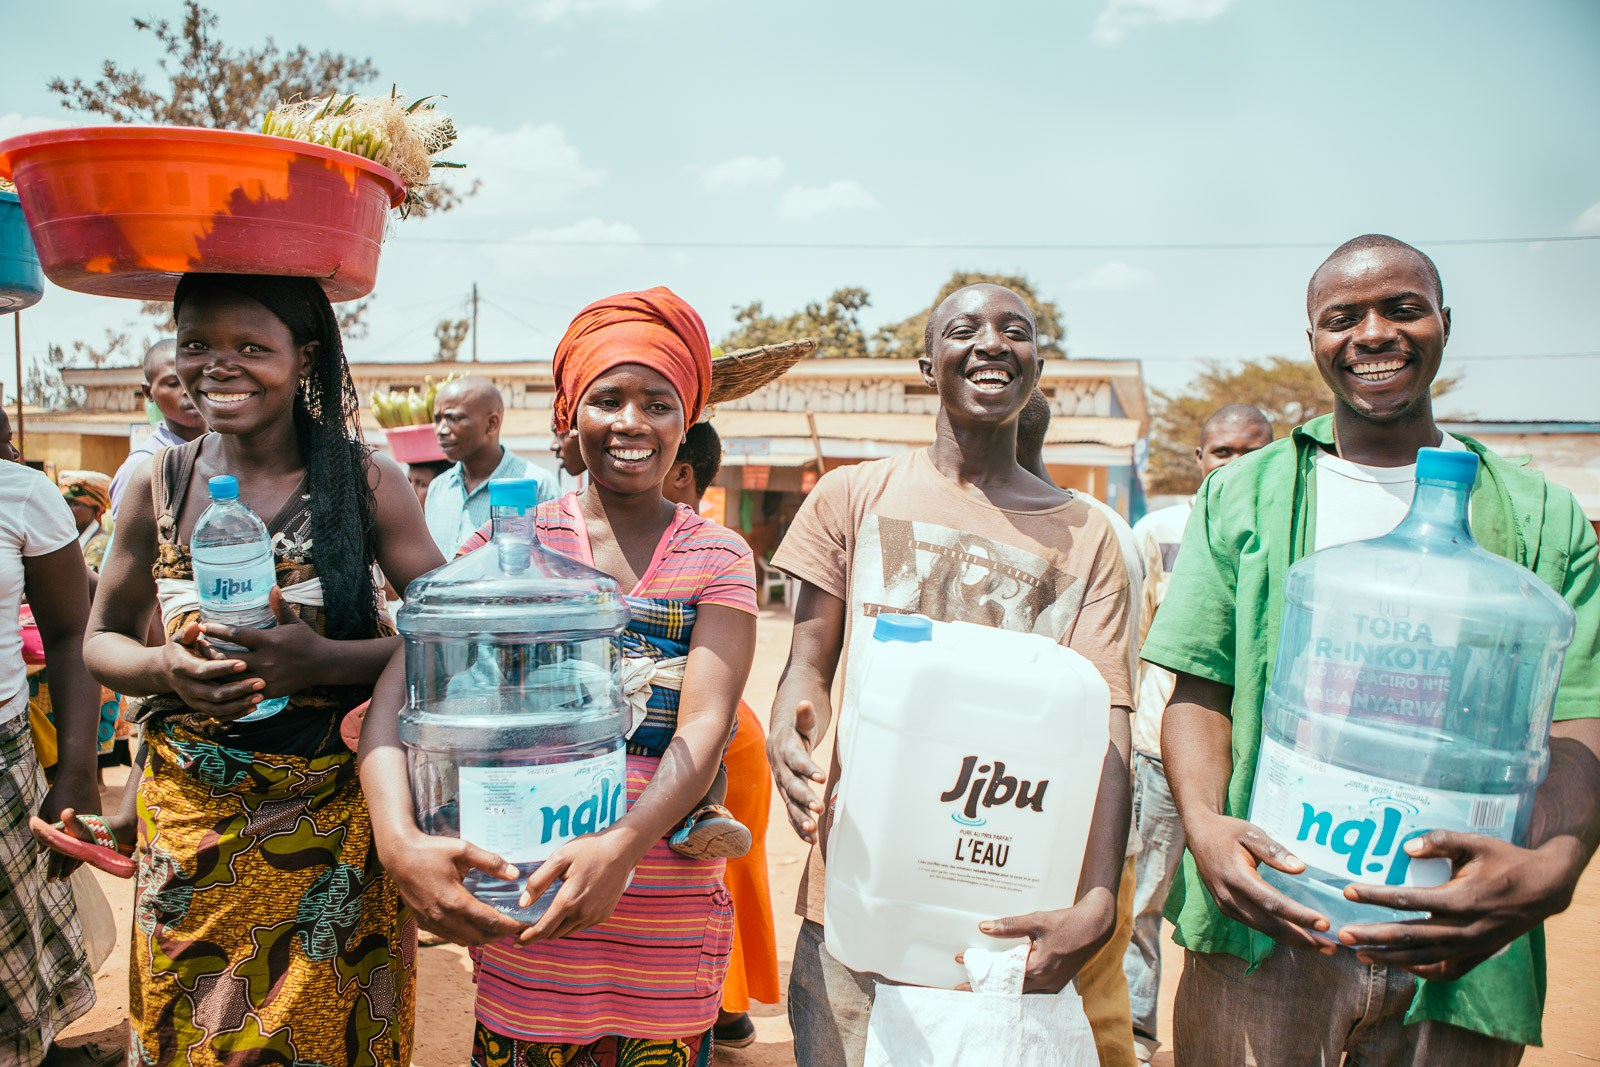 Jibu capitalizes and equips emerging market entrepreneurs to create affordable access to drinking water and other necessities